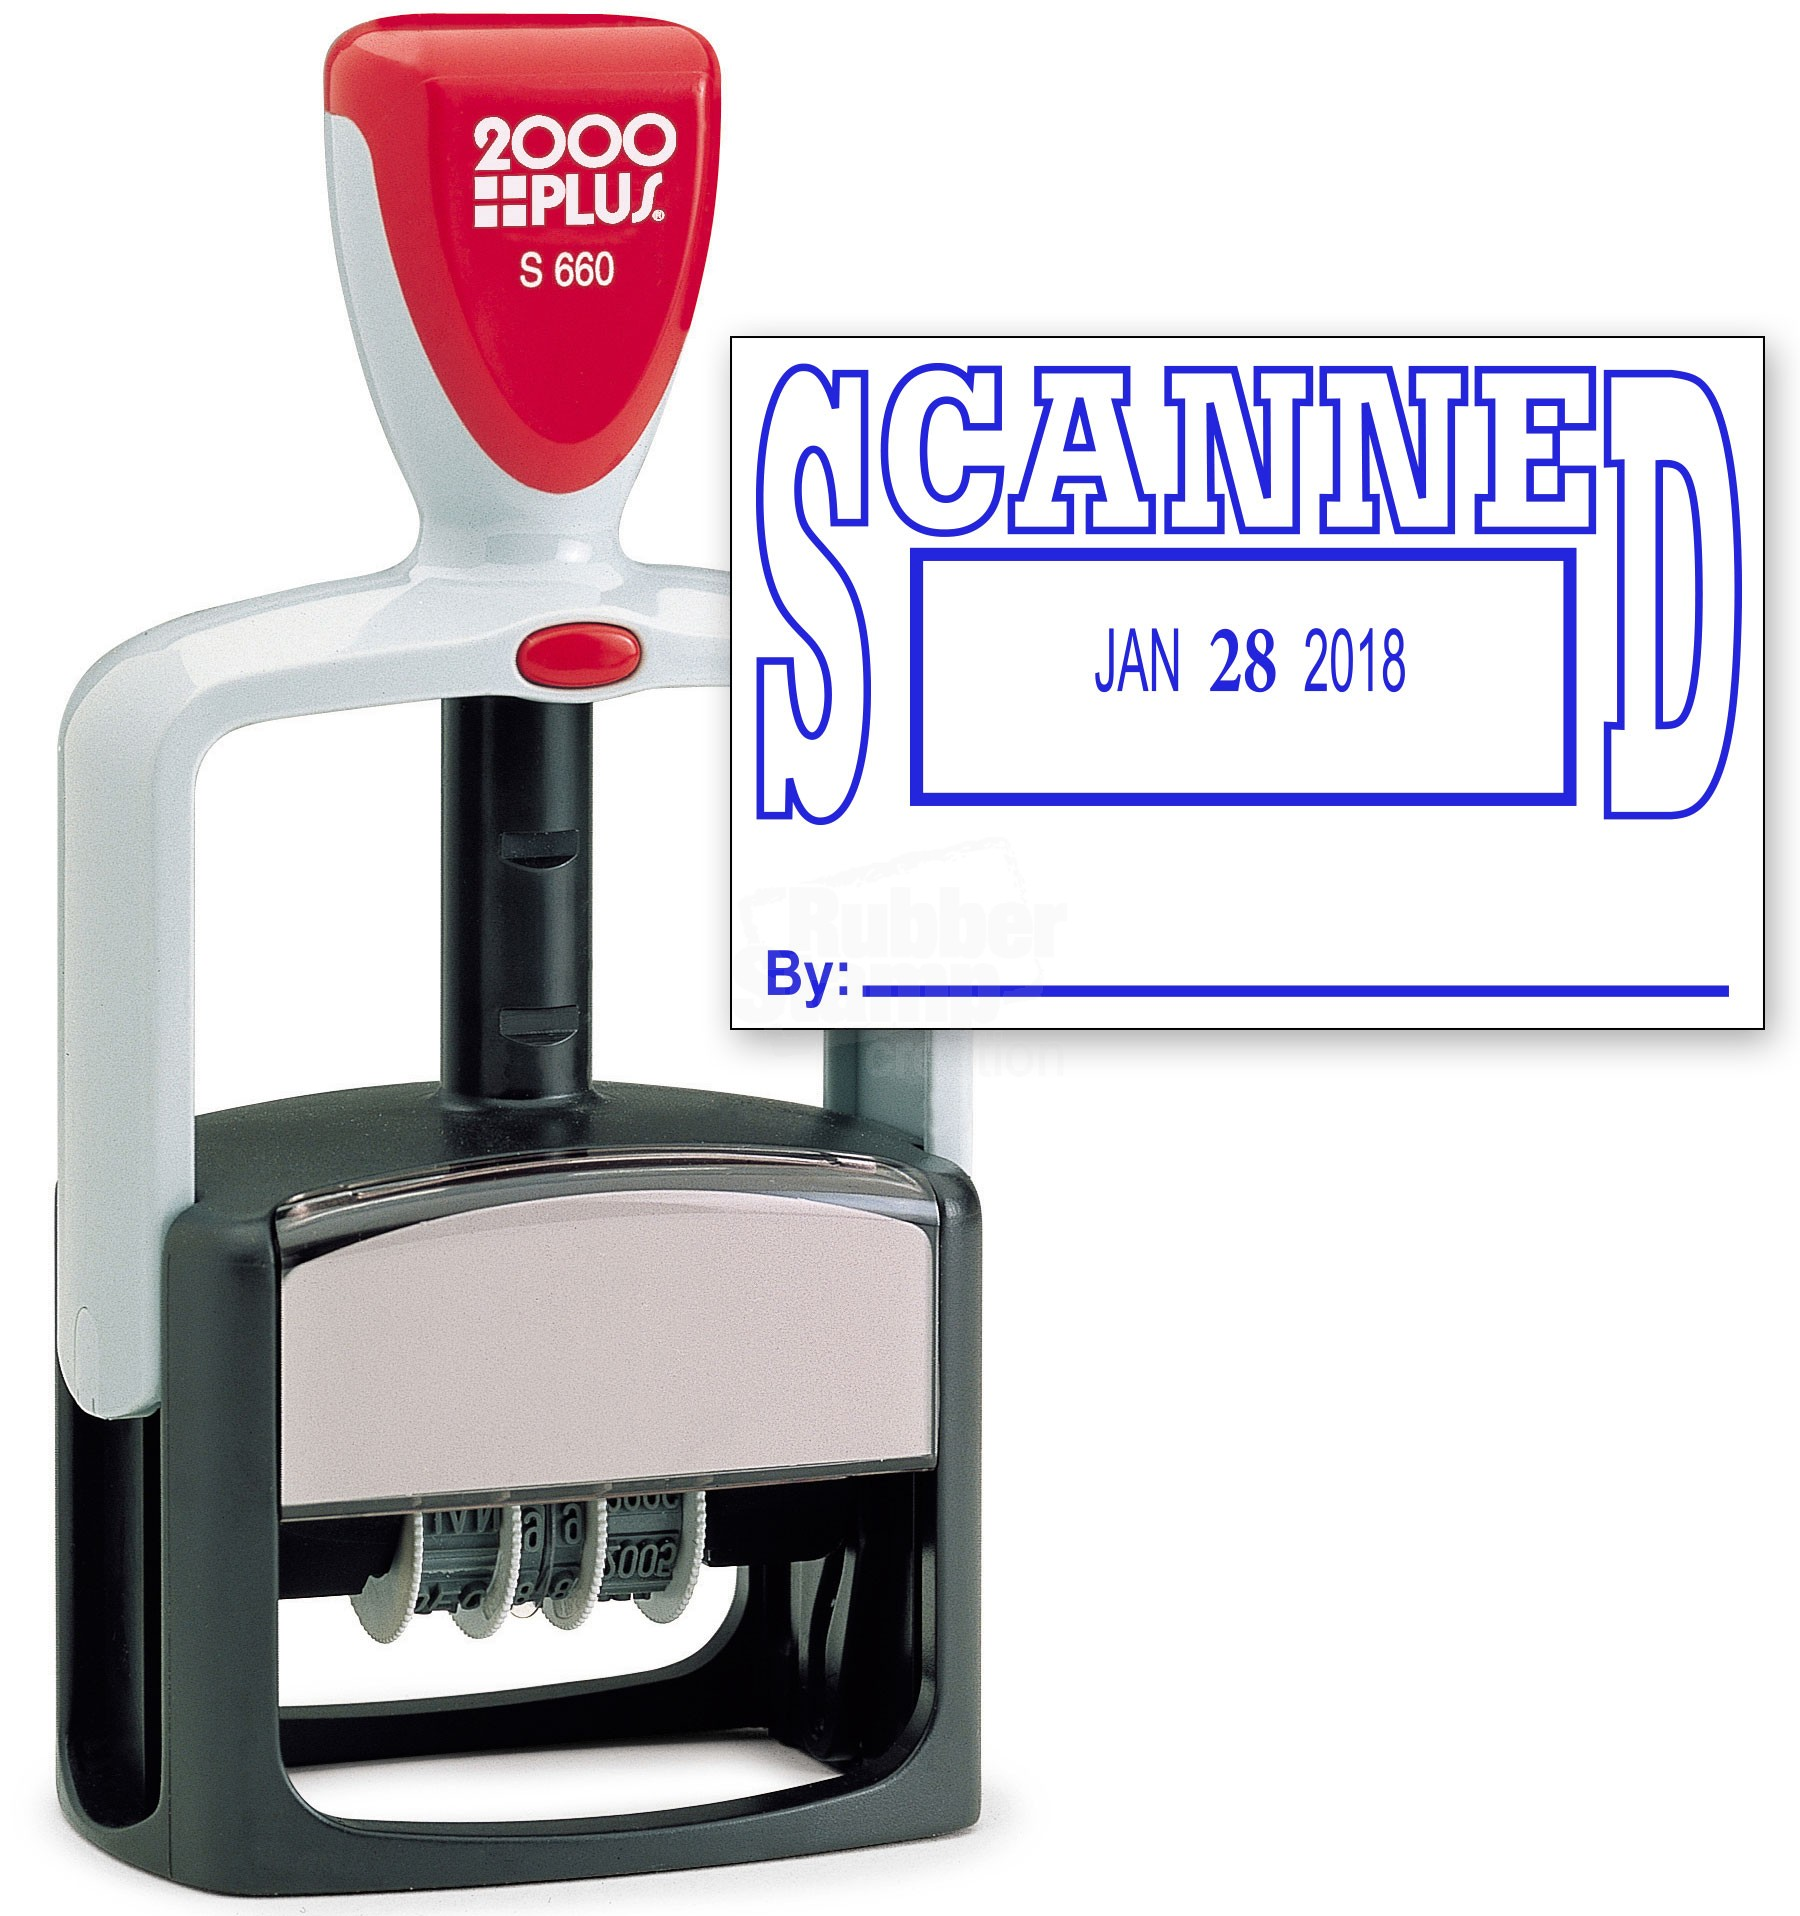 2000 Plus Heavy Duty Style 2 Color Date Stamp With Scanned